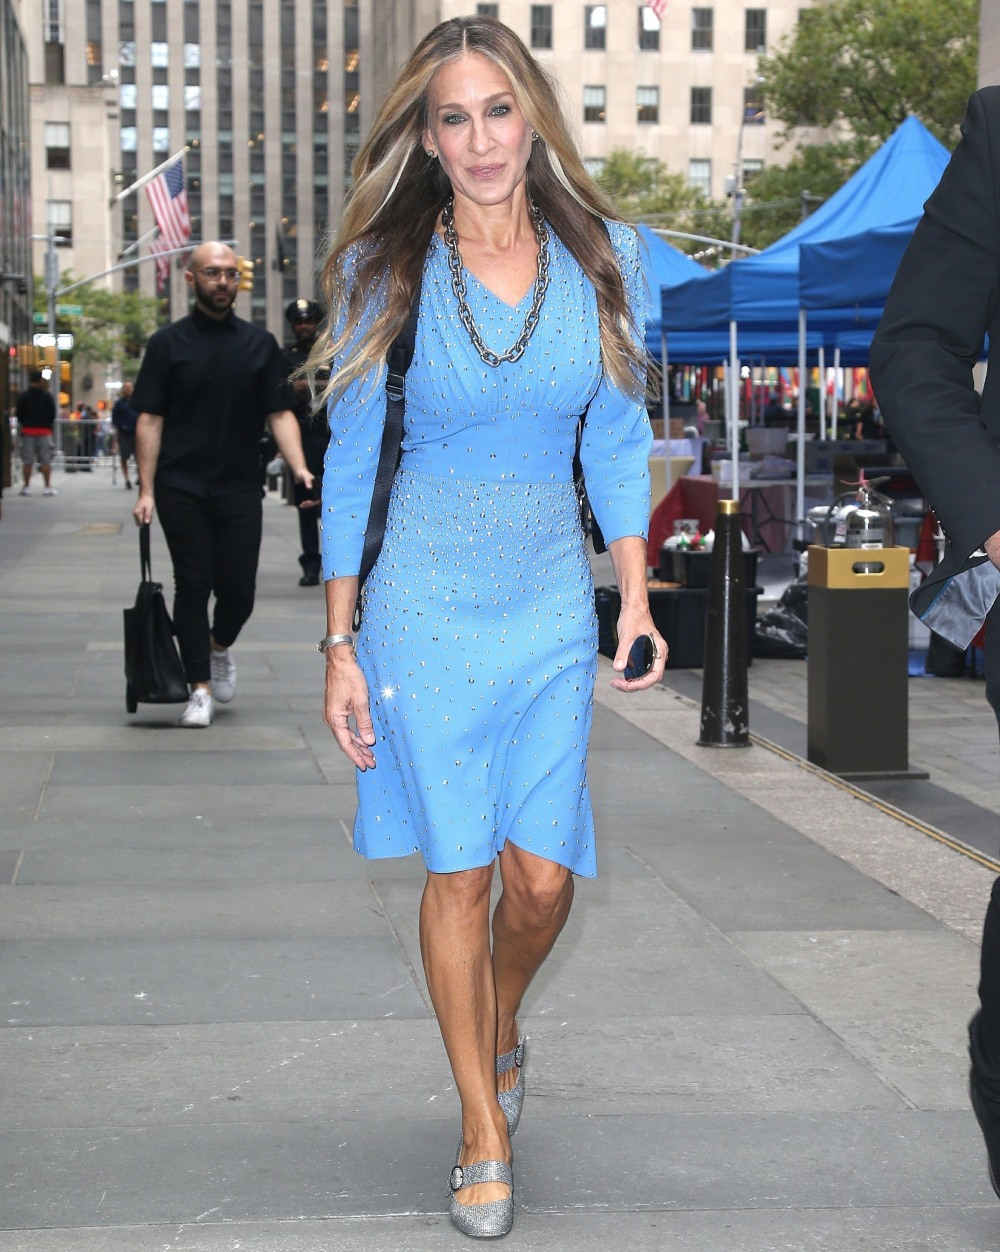 Sarah Jessica Parker leaves 'The Today Show' in New York